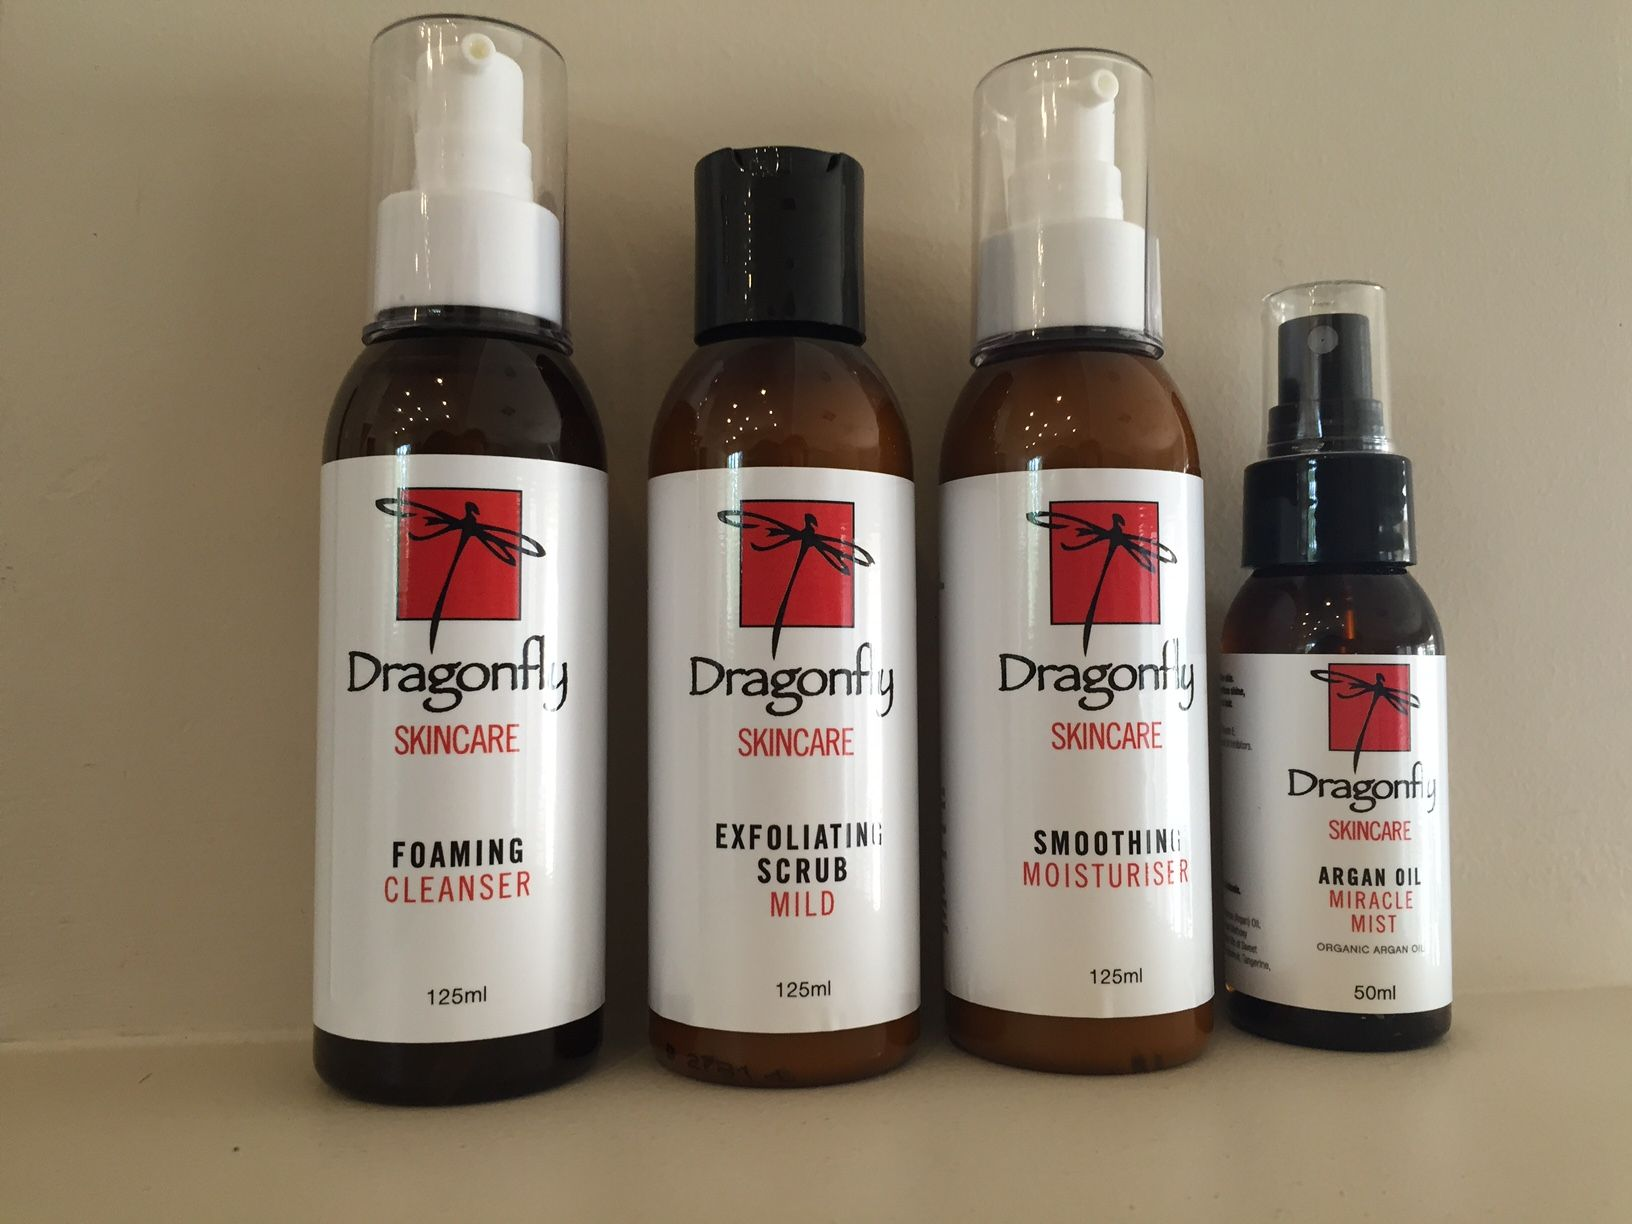 Pin by Michelle Howard on Dragonfly Skincare Wine bottle